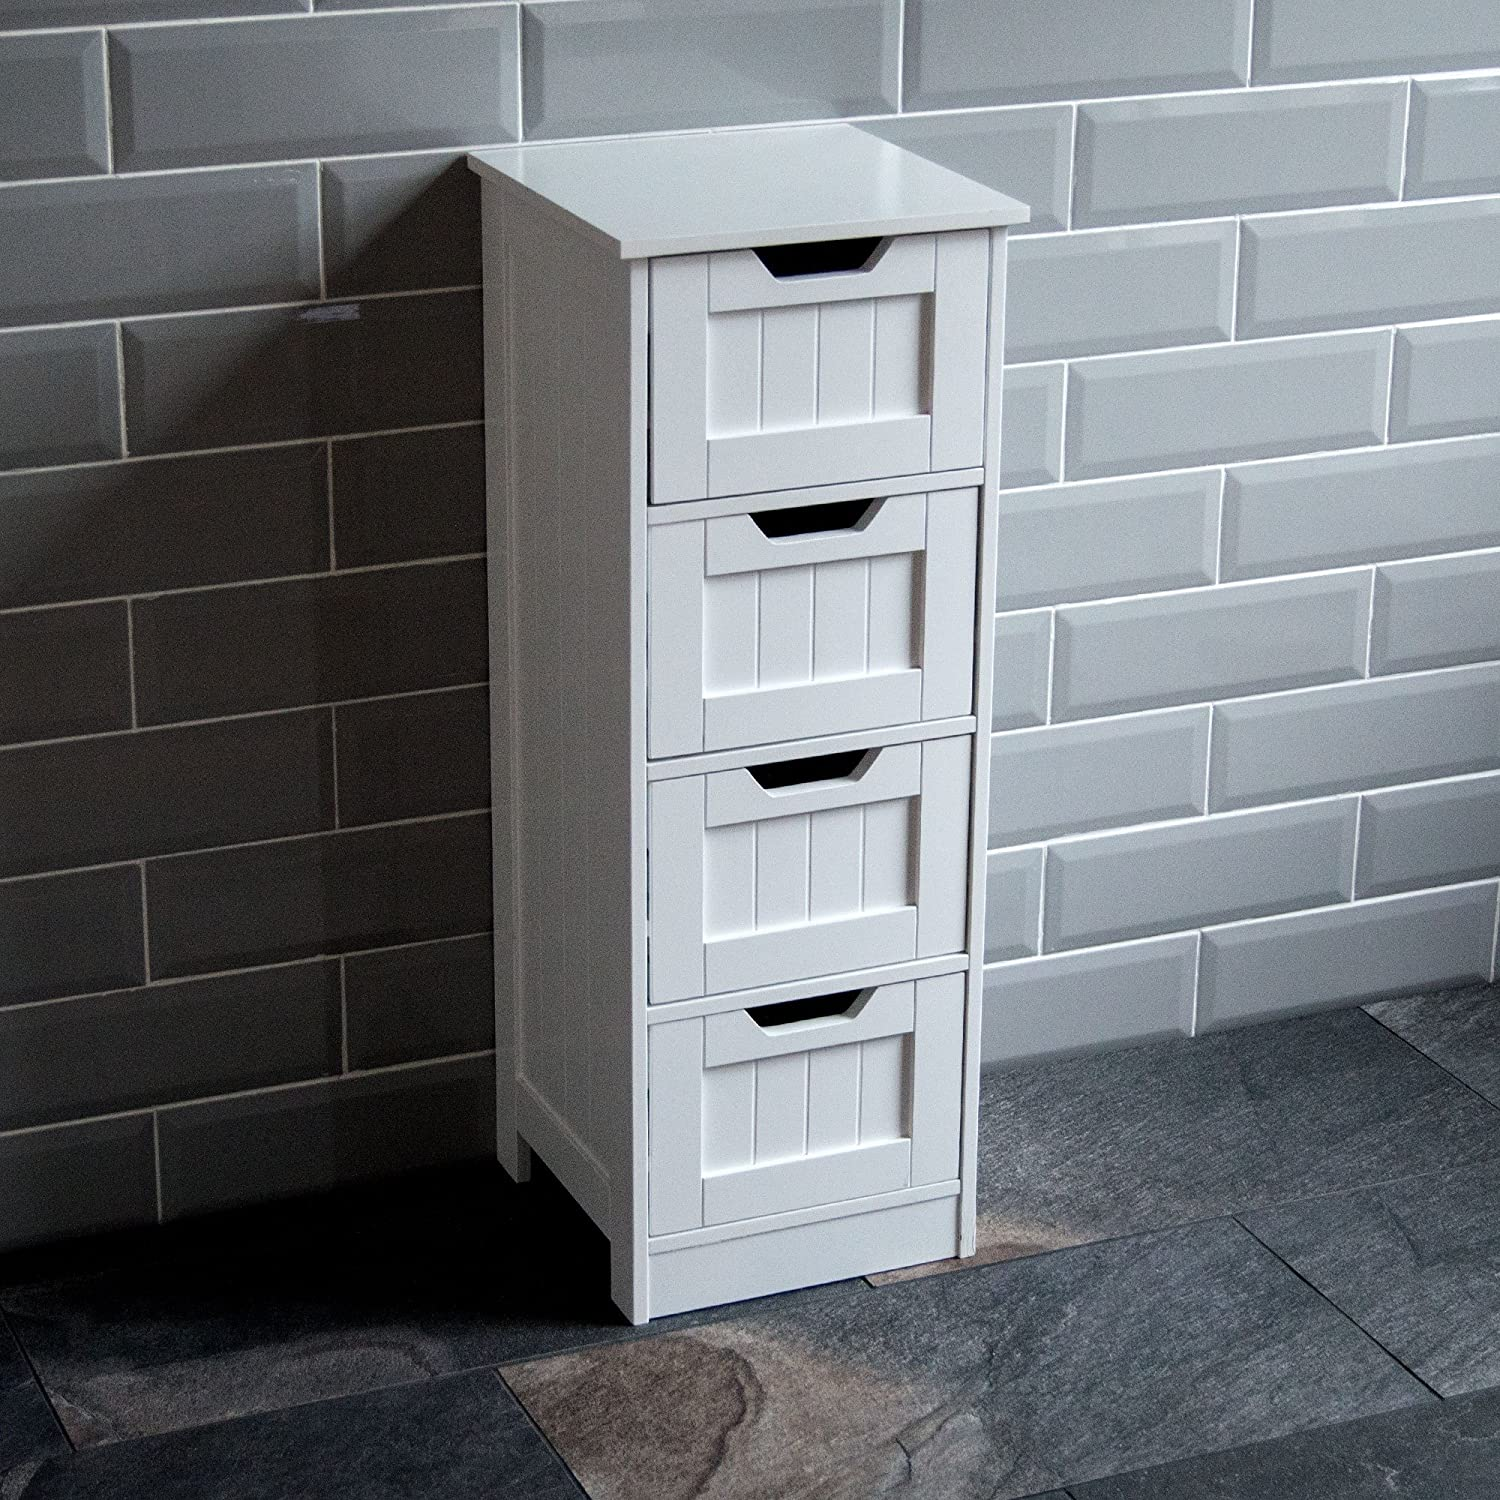 cabinet of floor on bathroom cabinets ideas blogbeen beautiful ixarsjv storage and styles information